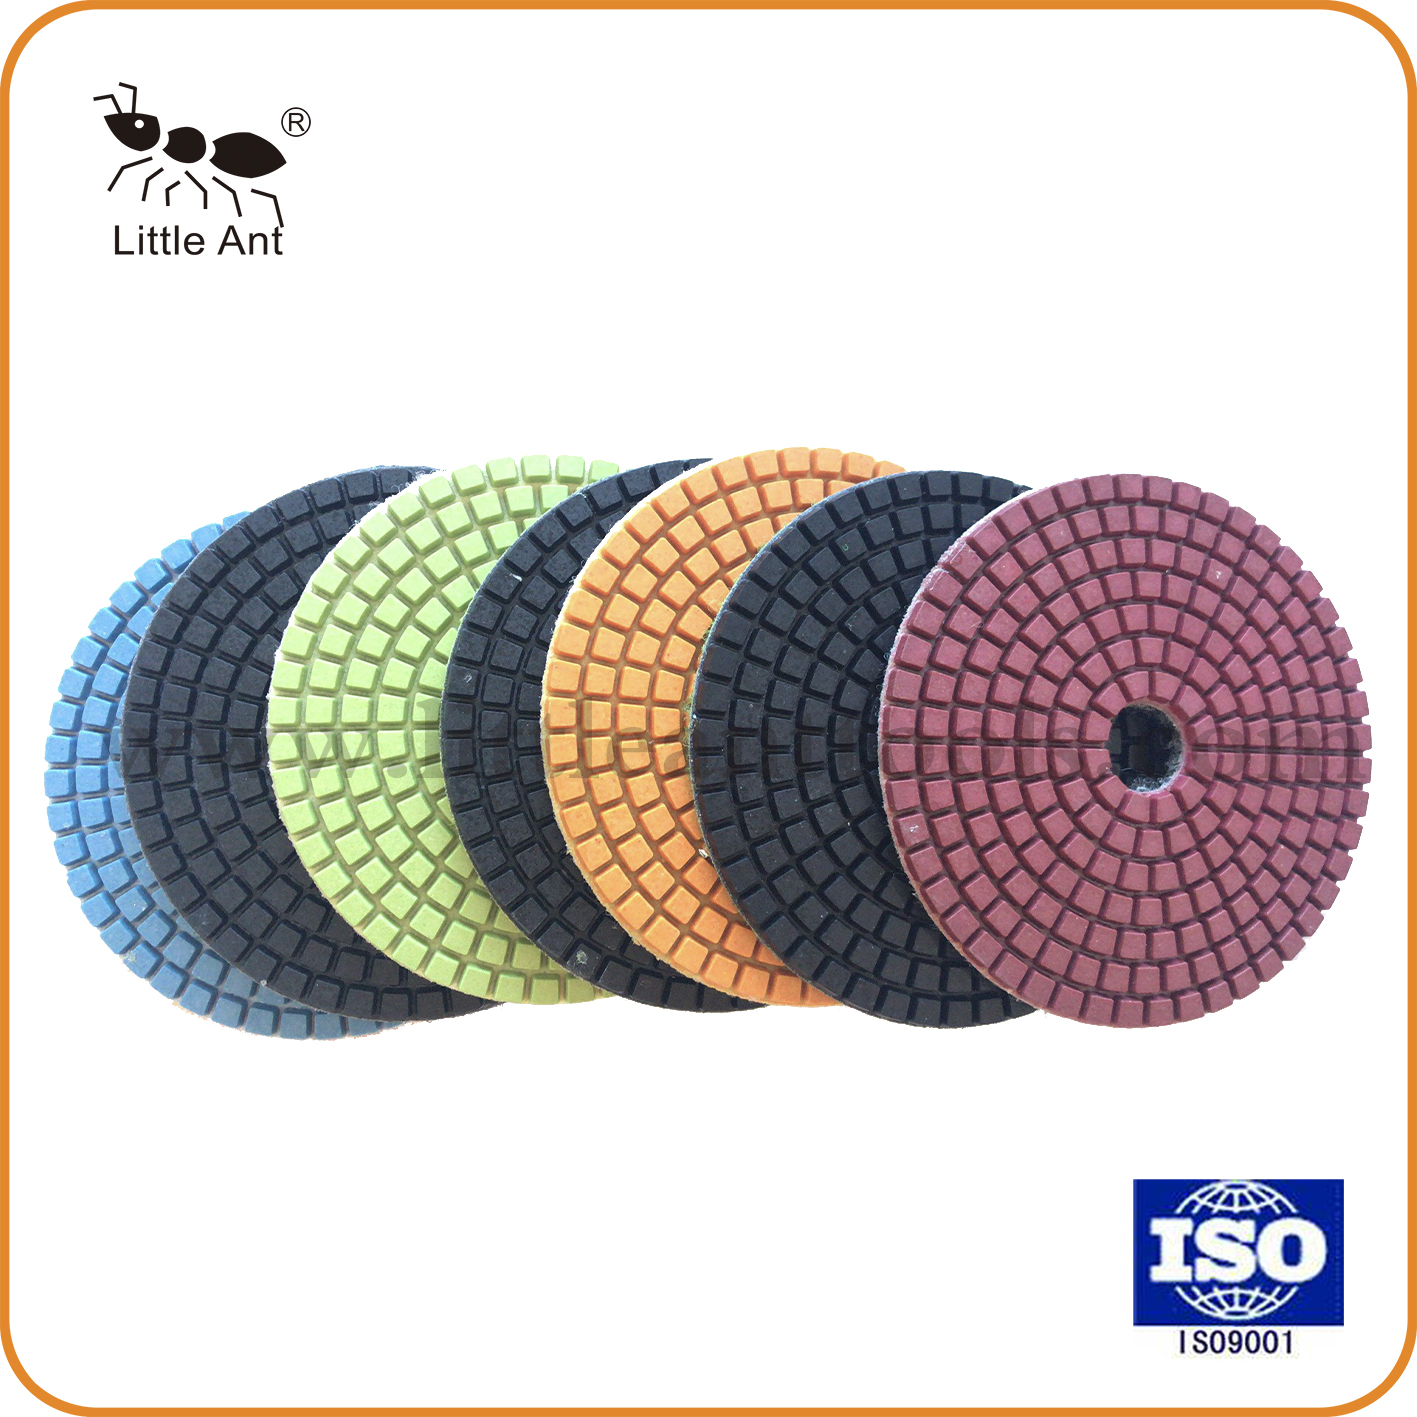 Squre Wet Polishing Pad 7 Steps for Engineered Stone Hot Pressed Diamond Stone